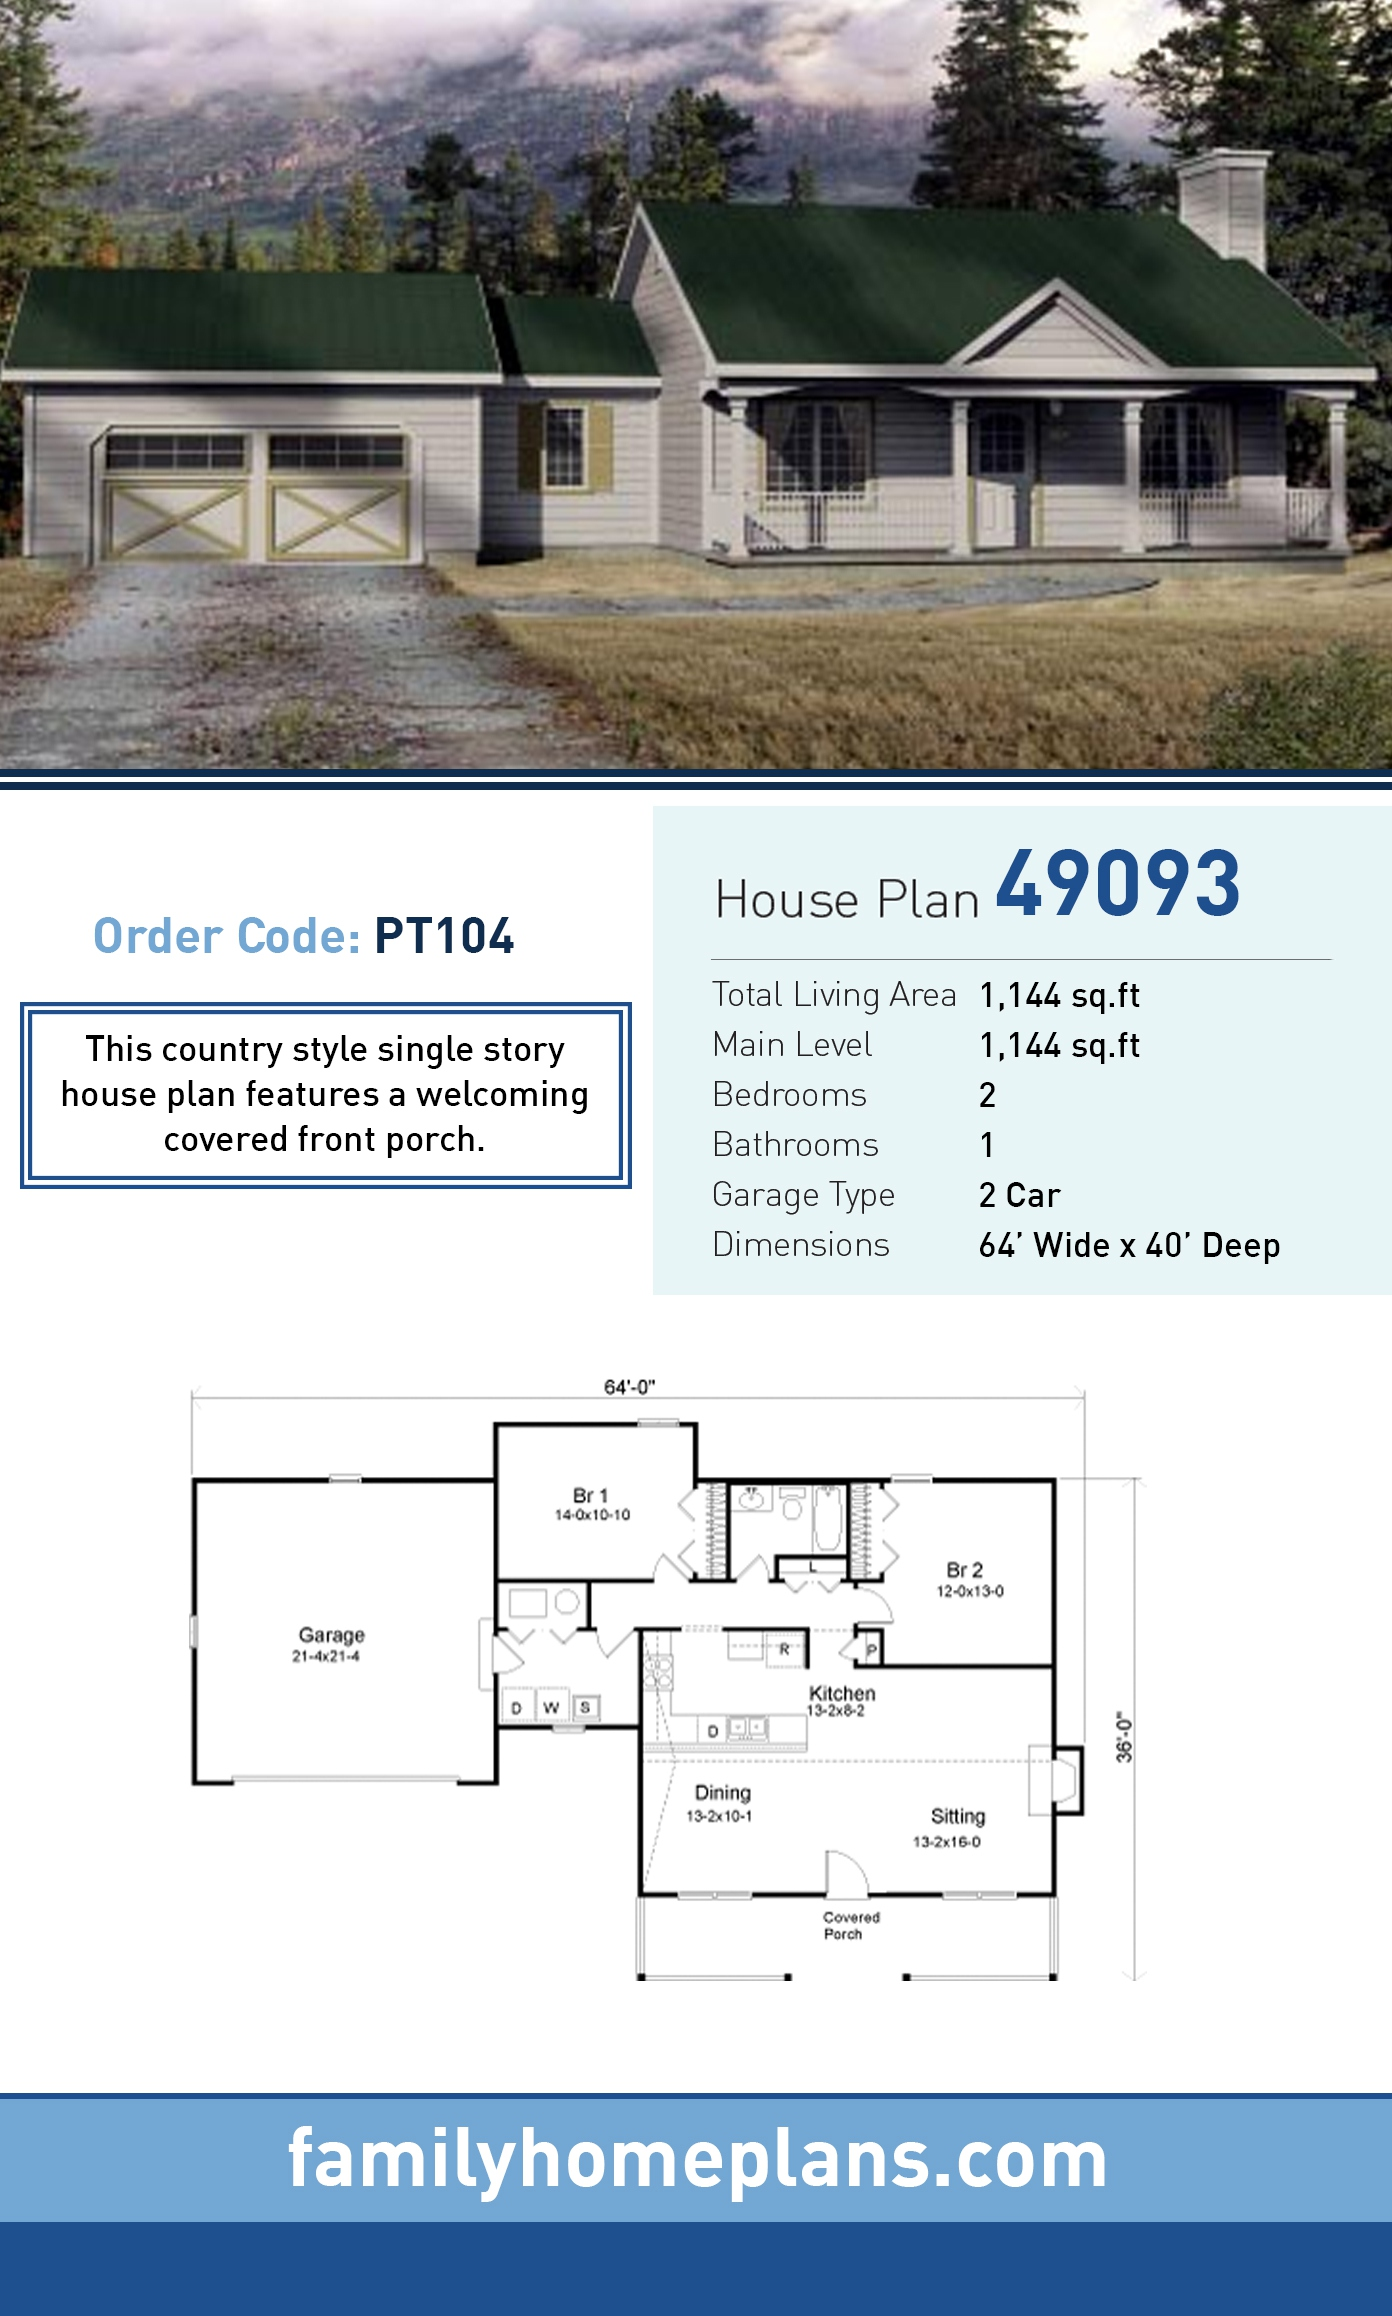 House Plan 49093 with 2 Beds, 1 Baths, 2 Car Garage